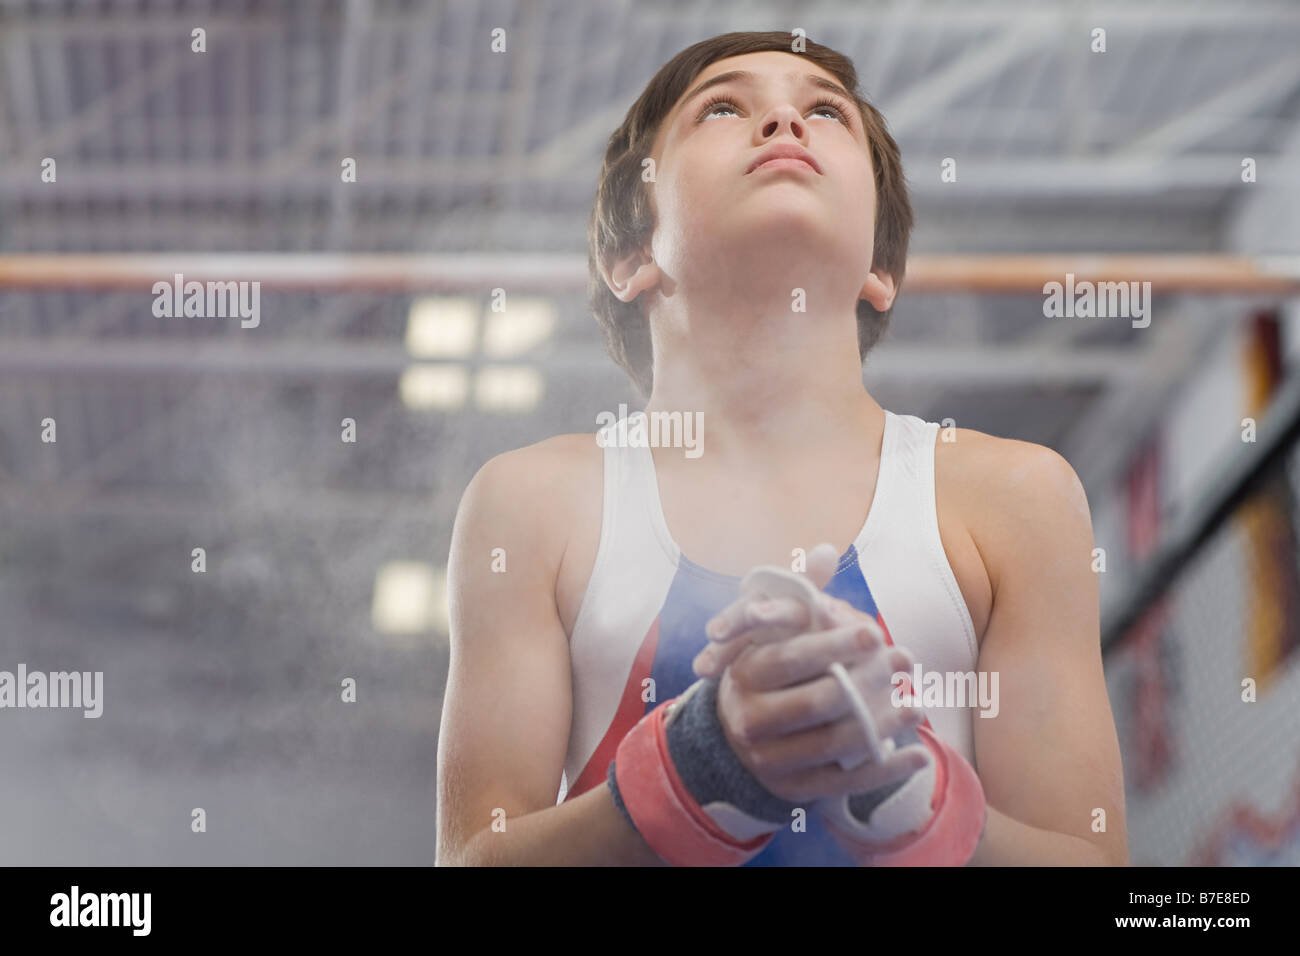 Gymnast rubbing sports chalk onto his hands - Stock Image